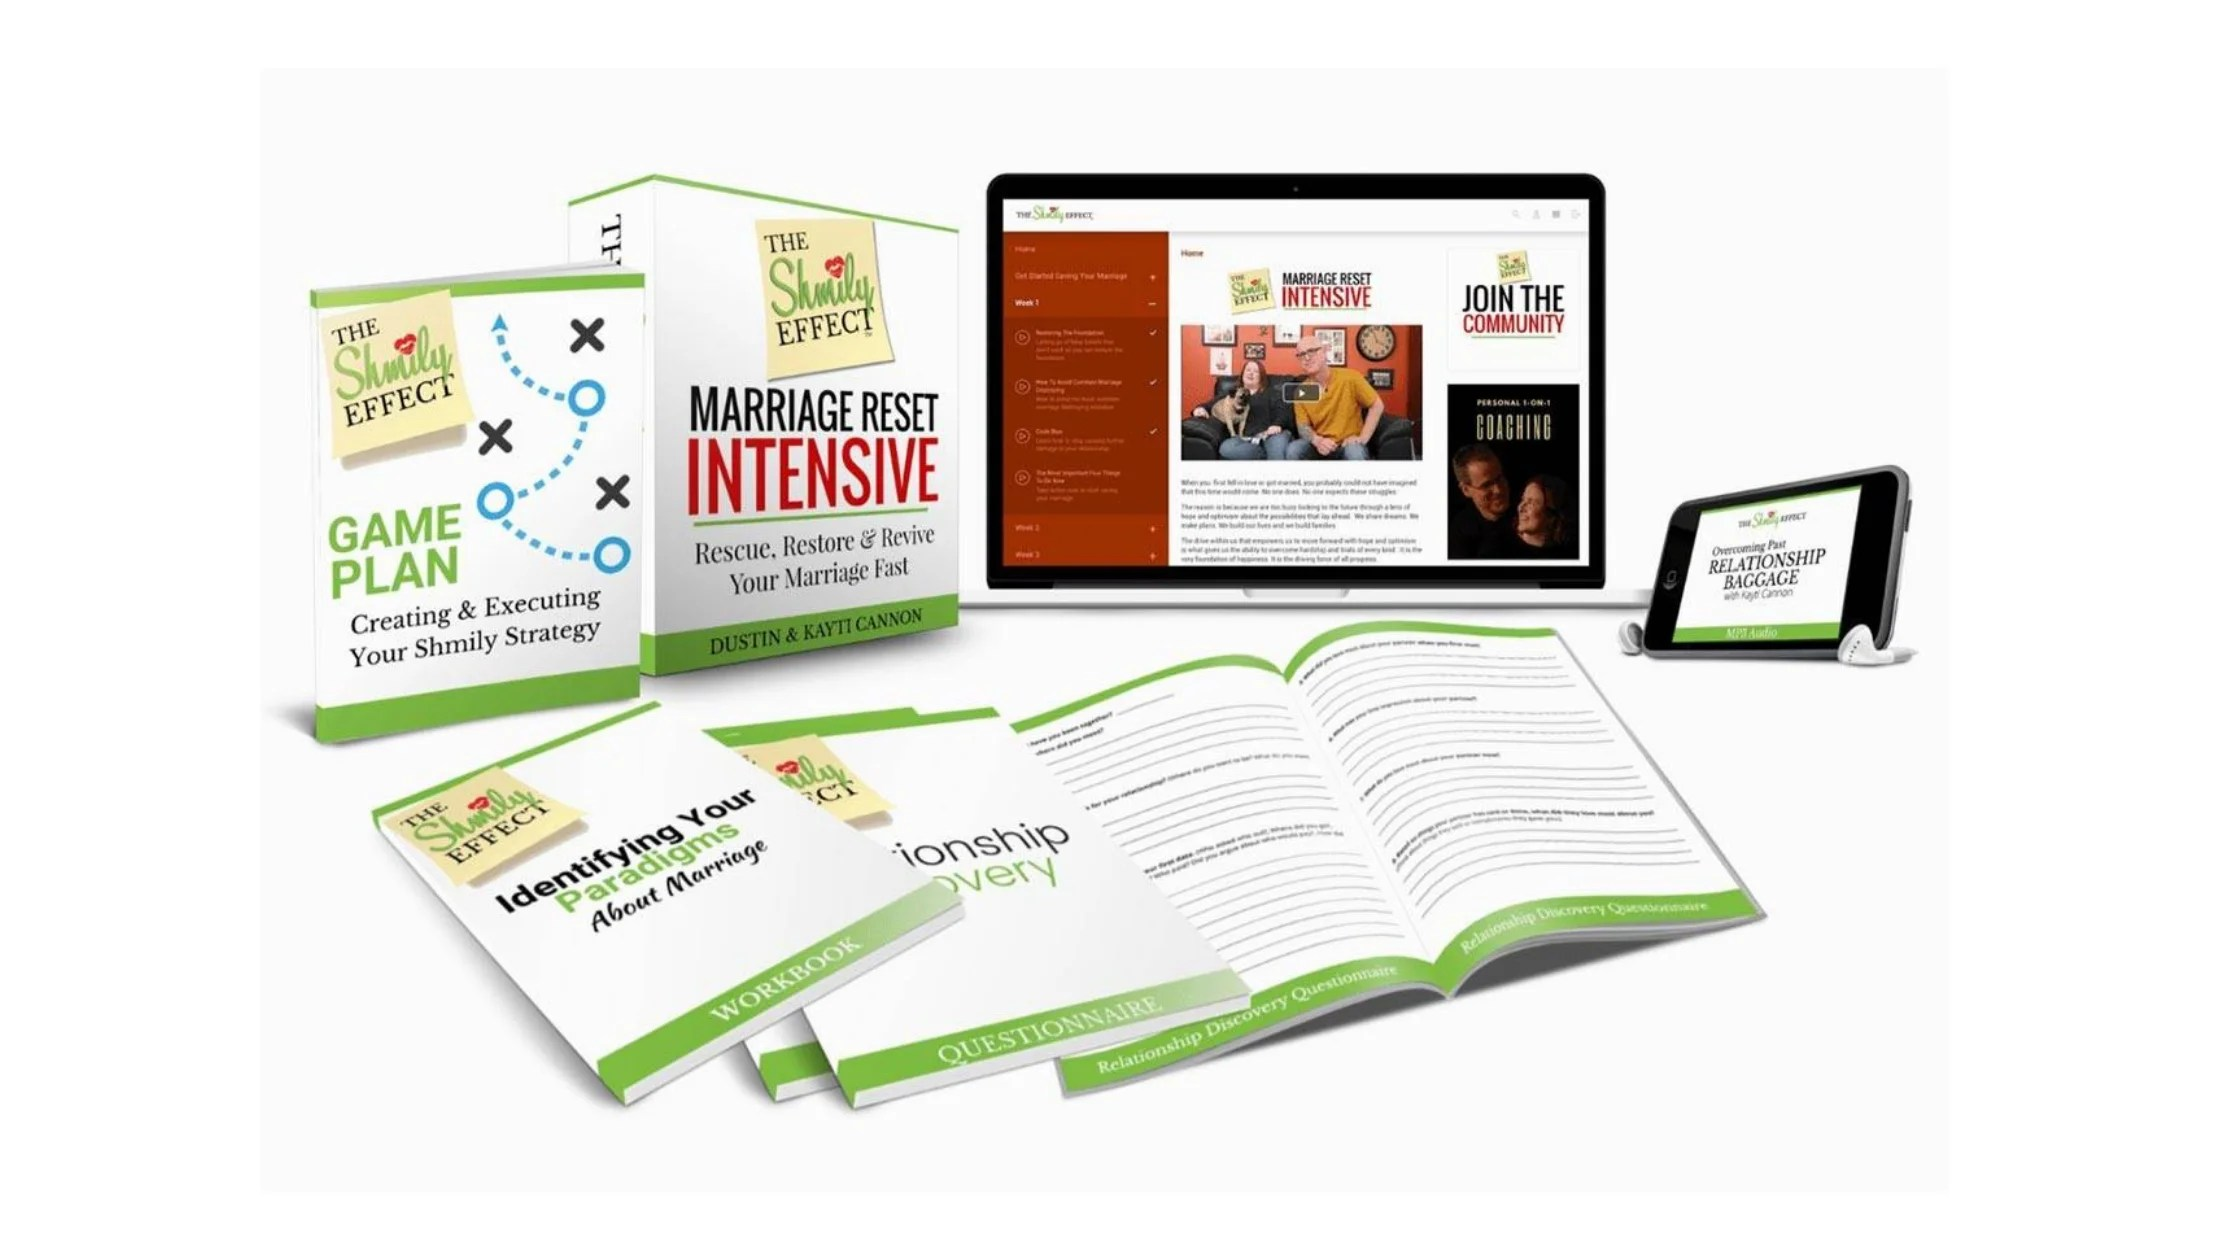 Marriage Reset Intensive Reviews